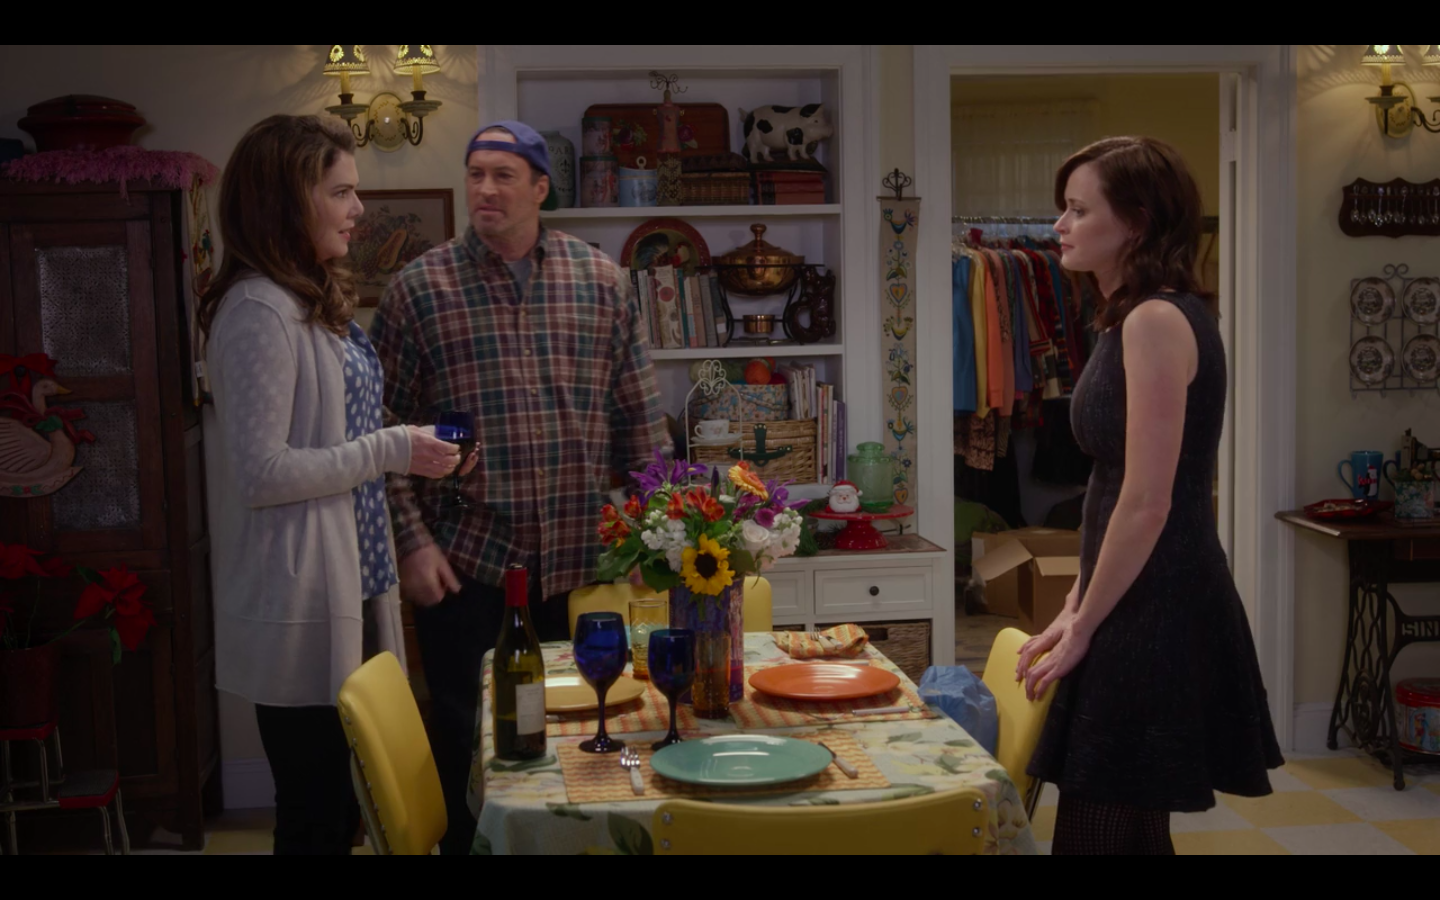 'Gilmore Girls' Pop-Up Comes to Warner Bros. Studio With Lorelai's Favorite Dishes